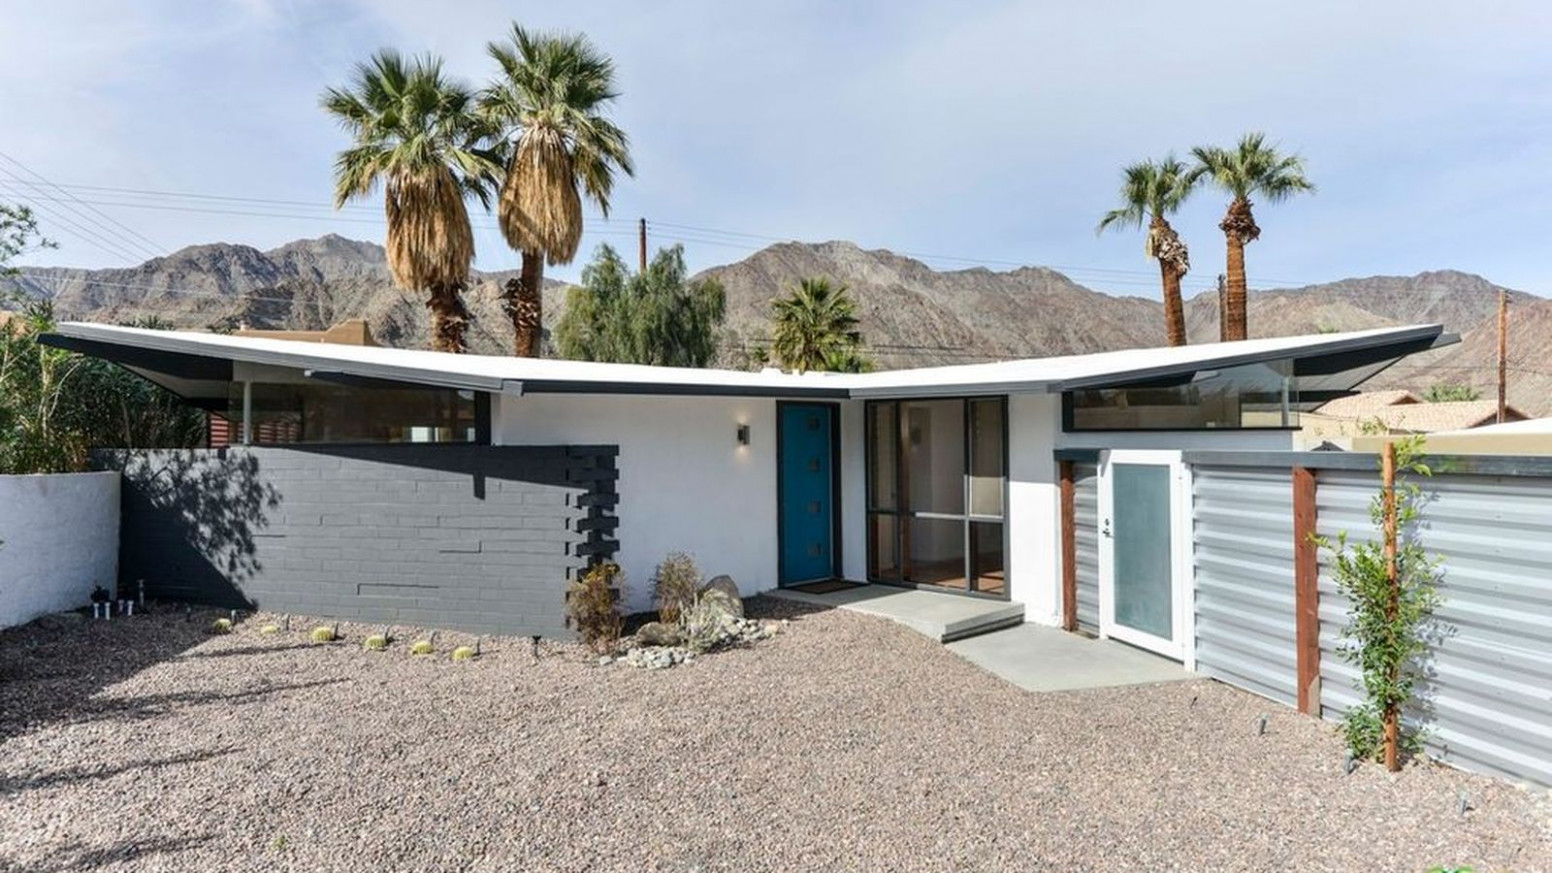 Midcentury Bungalow In Cali Desert Can Be Yours For $250K ..